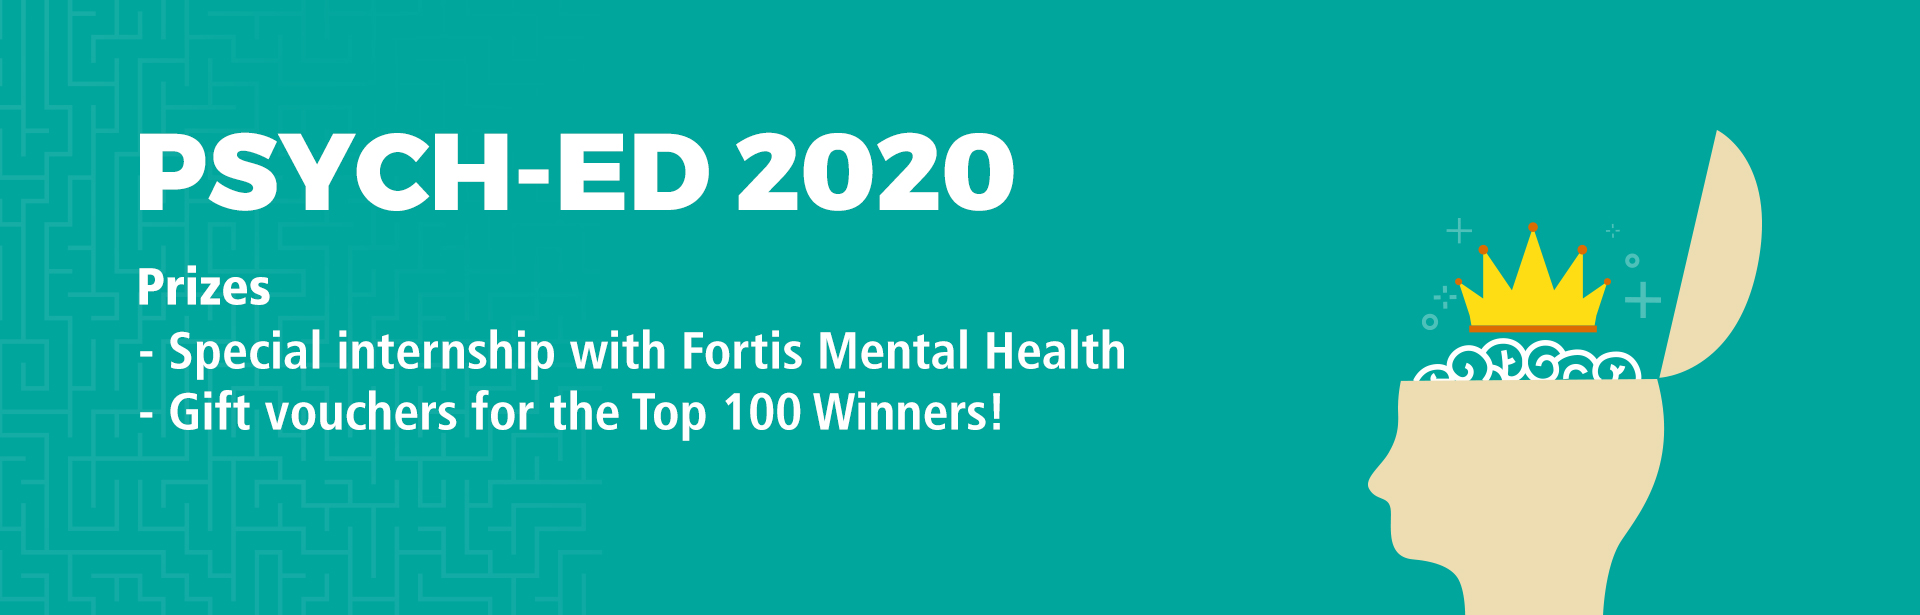 Fortis Psych-ed - Psychology Quiz for Schools